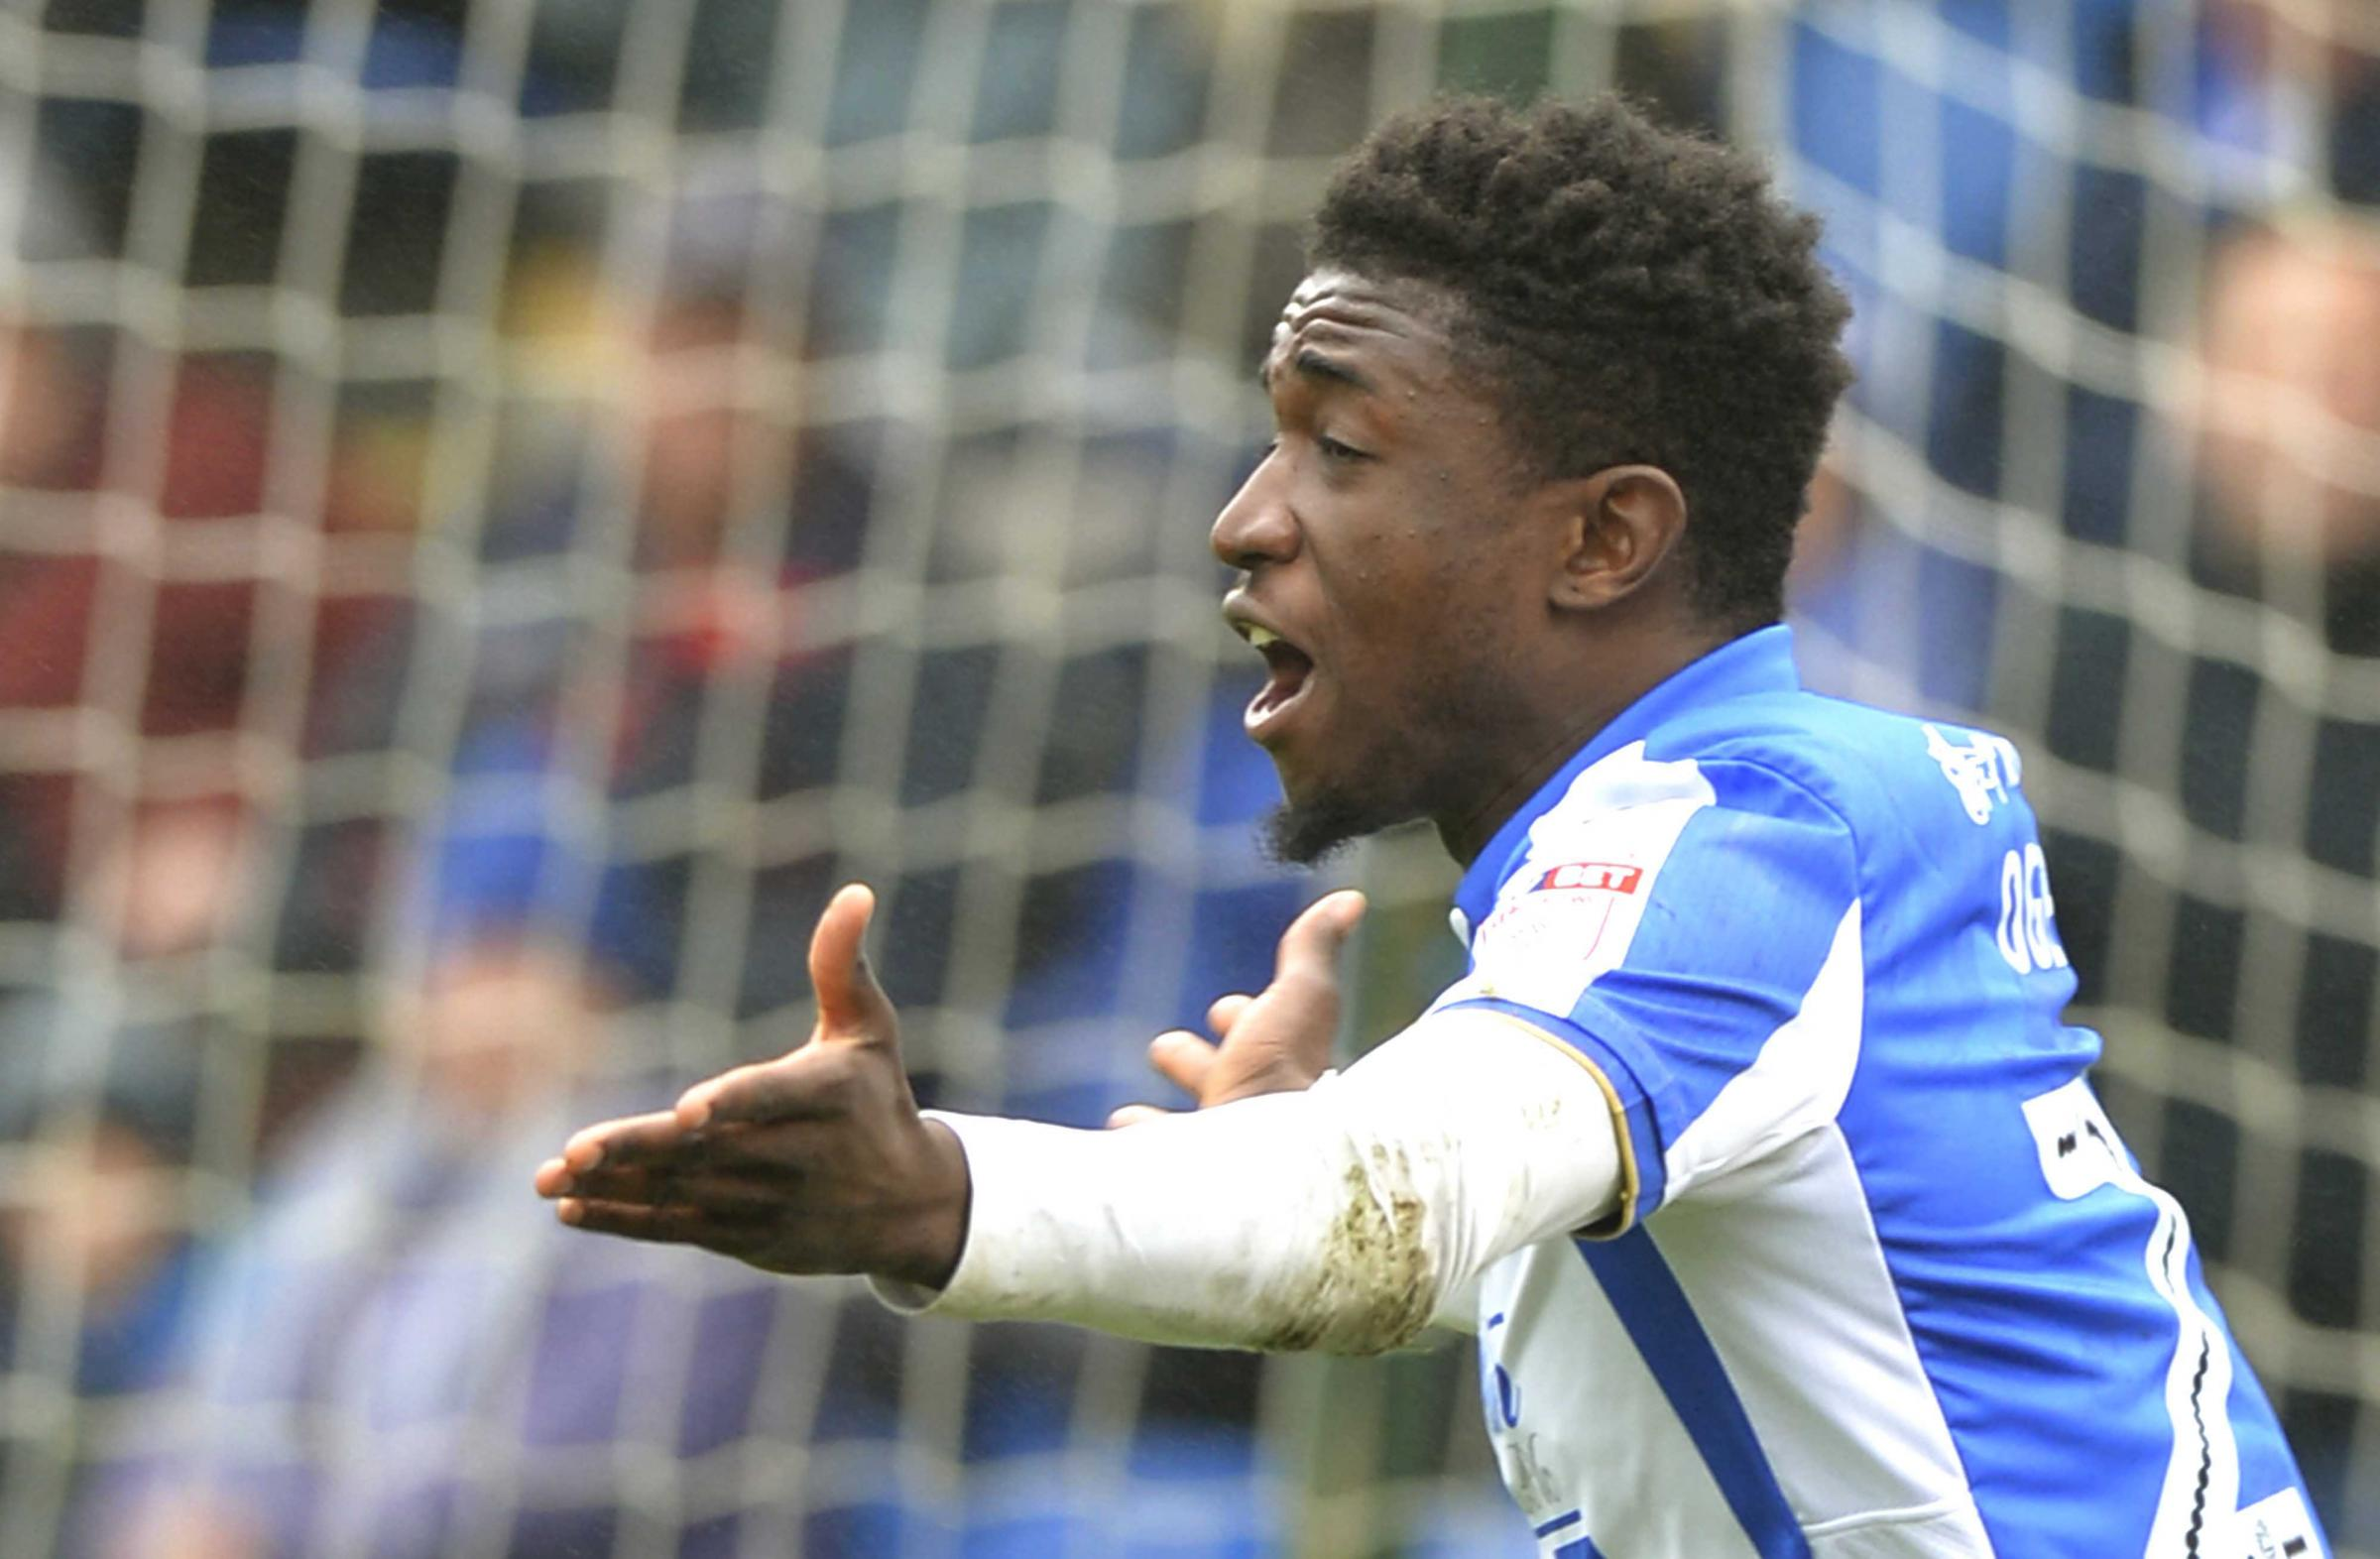 Big summer - Junior Ogedi-Uzokwe has vowed to come back stronger in pre-season for Colchester United Picture: STEVE BRADING